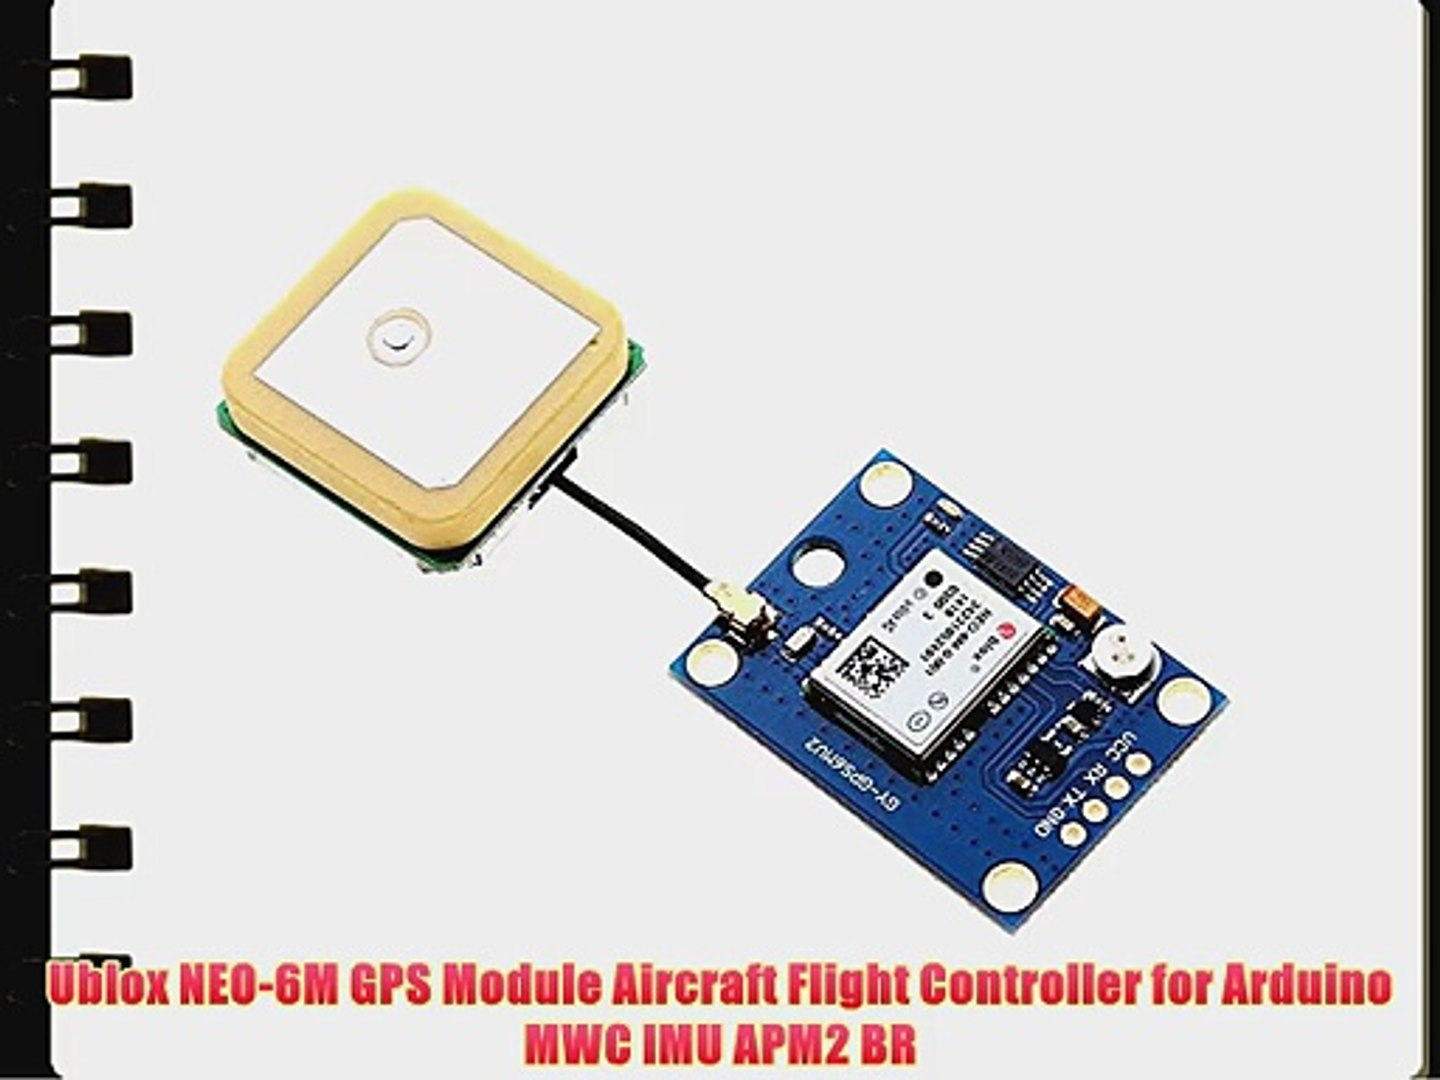 Ublox NEO-6M GPS Module Aircraft Flight Controller for Arduino MWC IMU APM2  BR